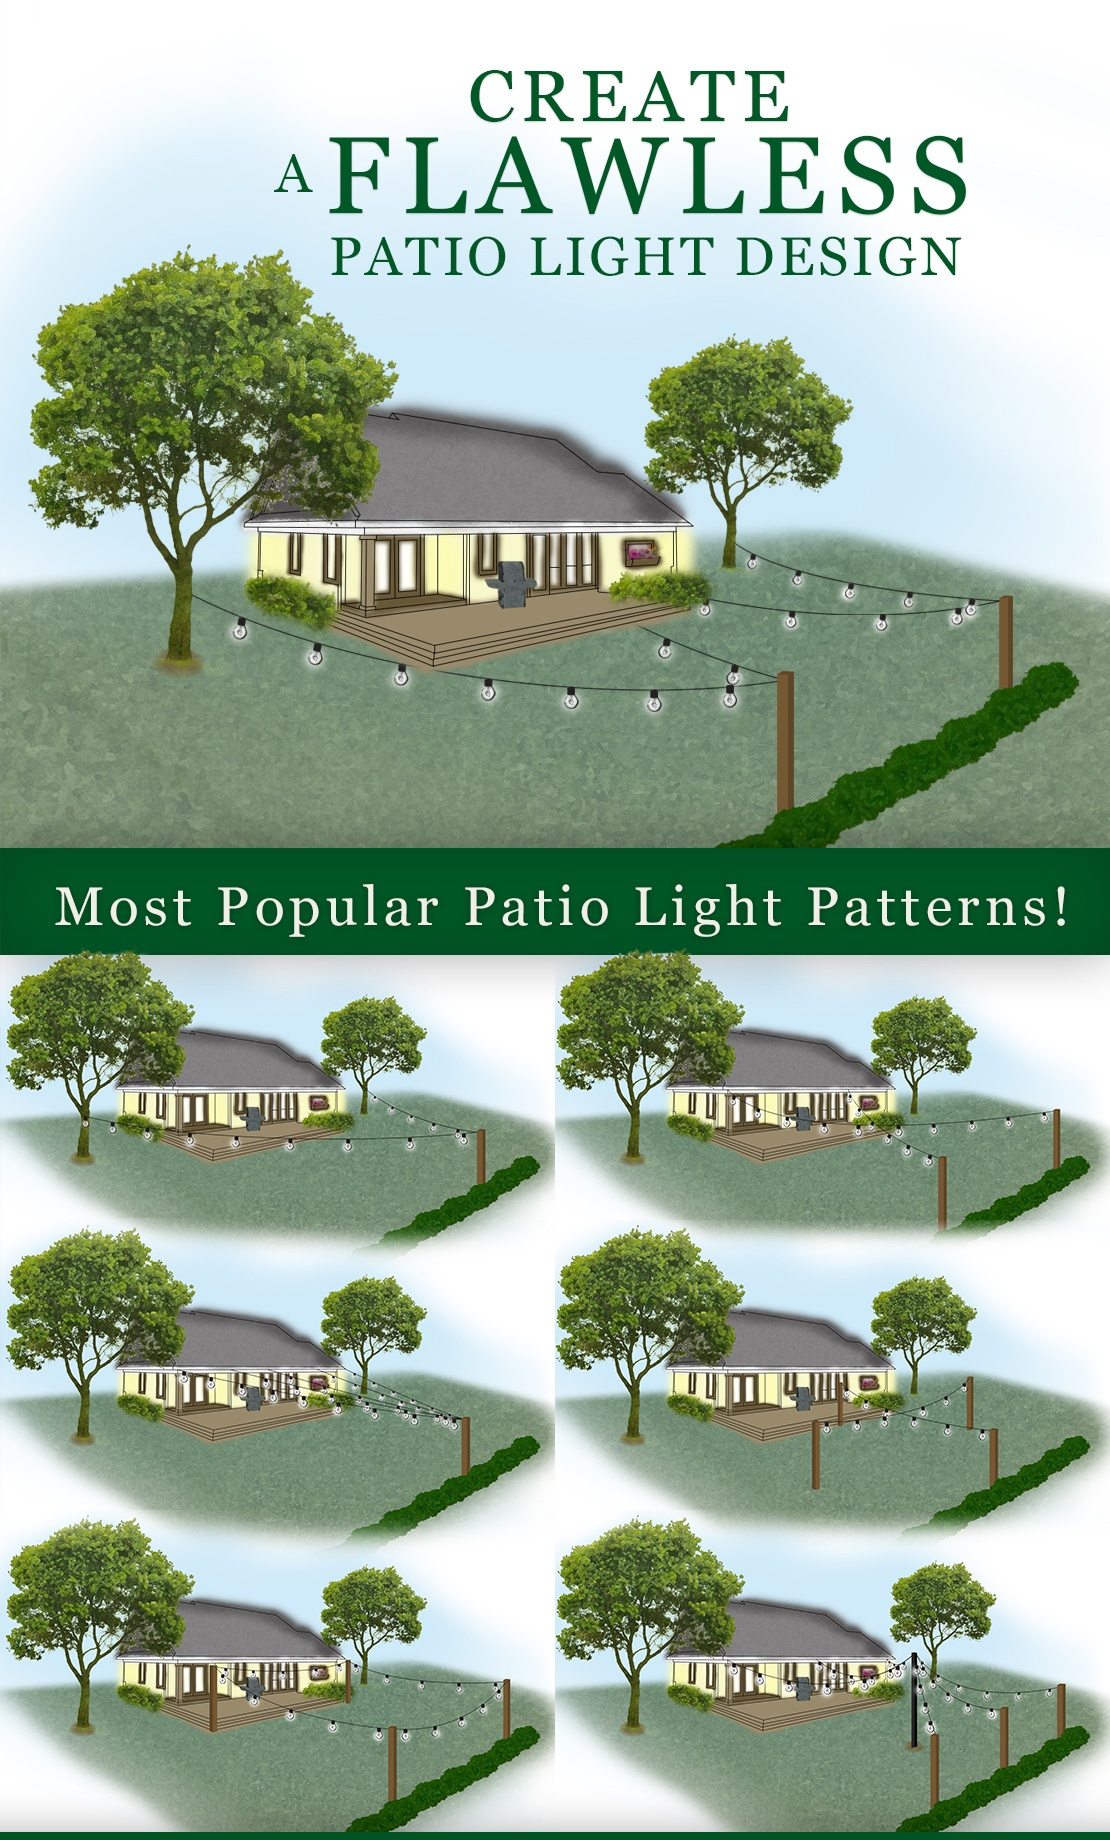 Hanging Patio Lights Ideas: How to hang patio lights and patio light pattern ideas.,Lighting